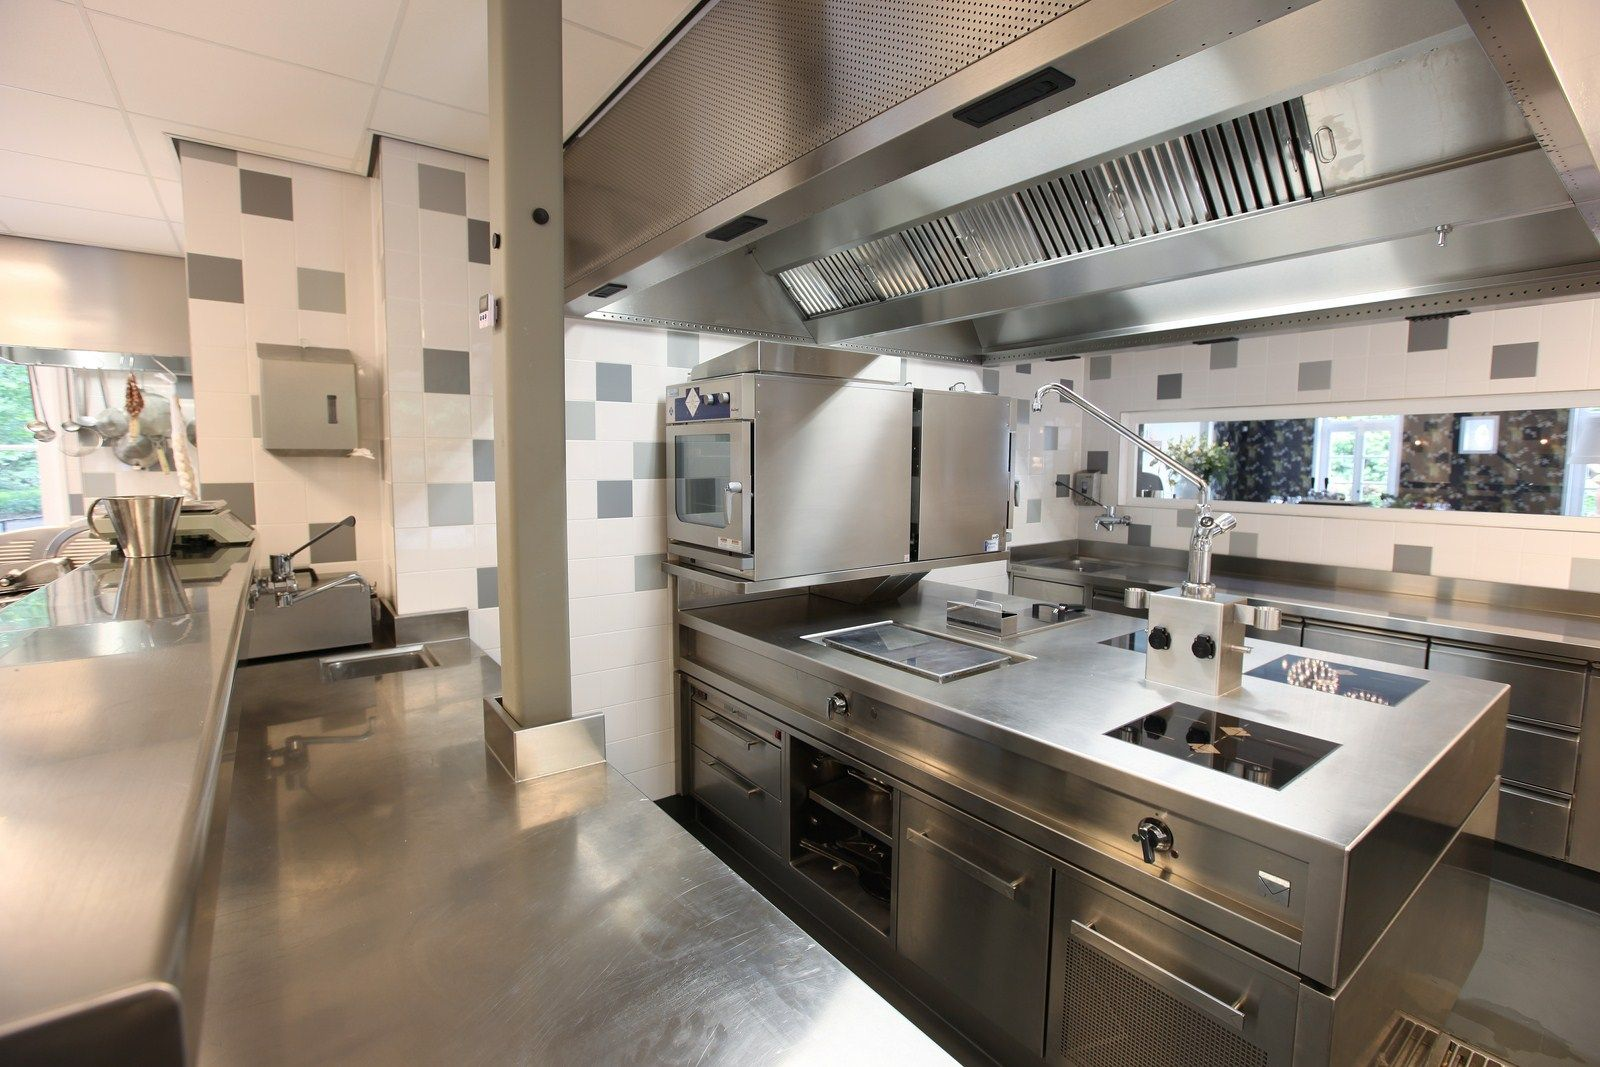 Restaurant Kitchen | Kichen commercial dream home | Pinterest ...